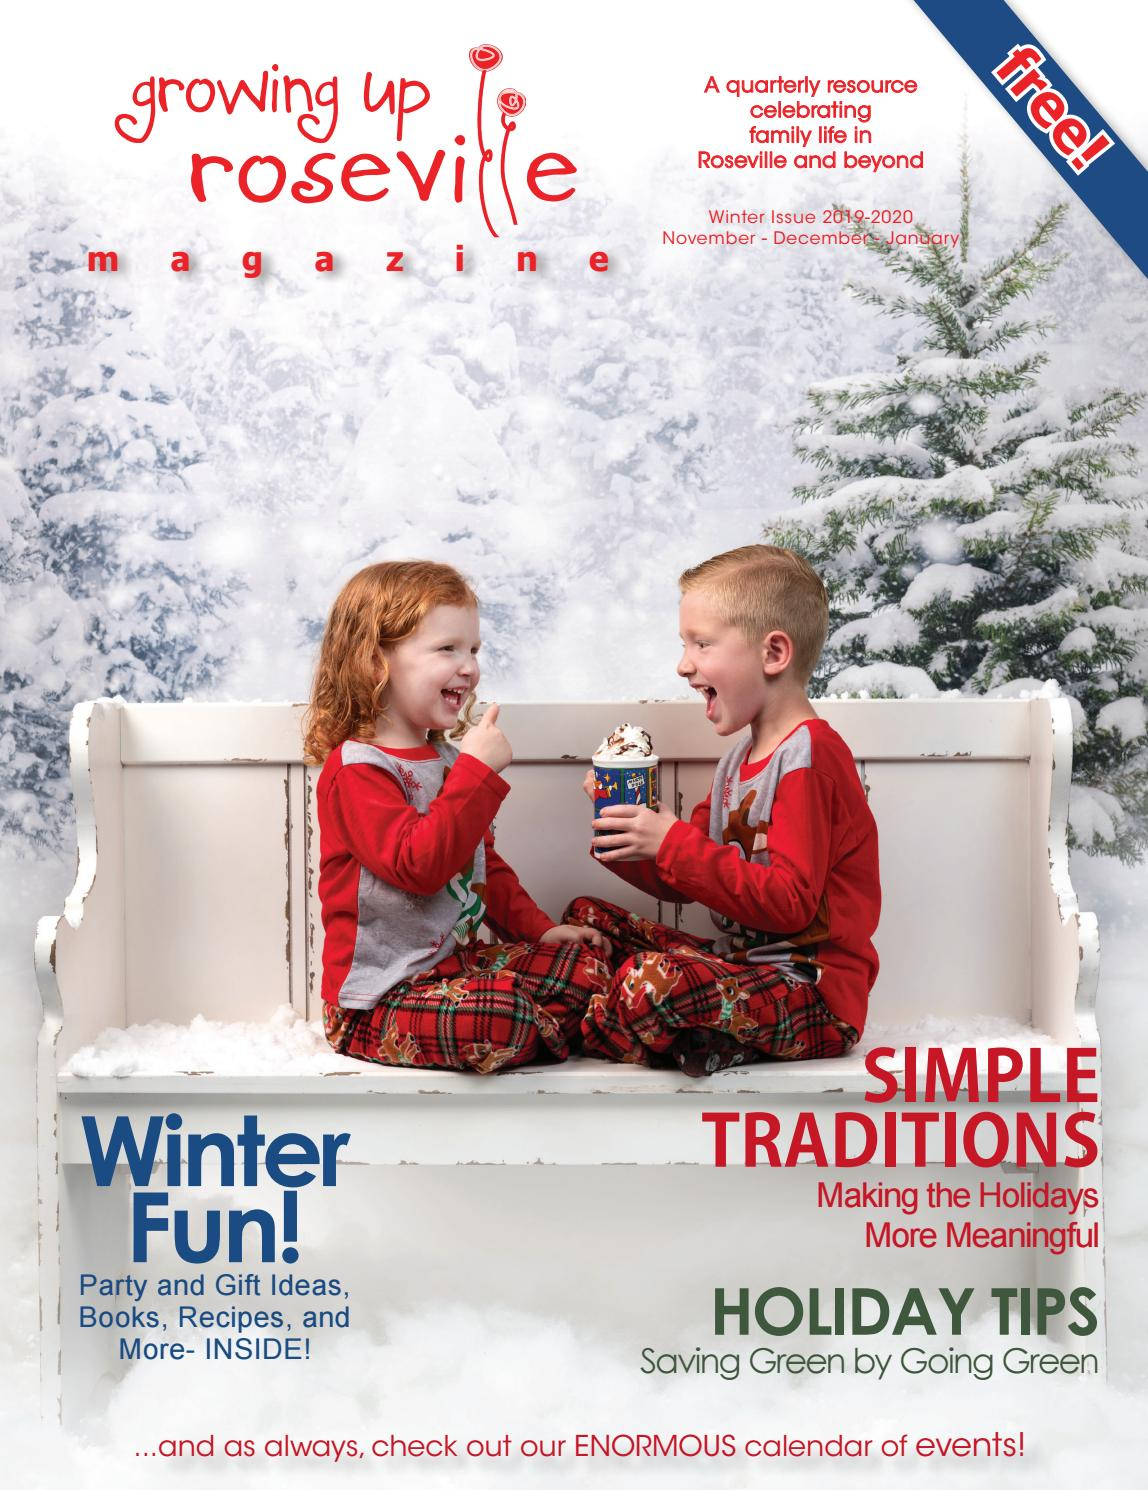 Fountains Roseville Events 2020.Winter 2019 2020 Issue By Growing Up Roseville Issuu